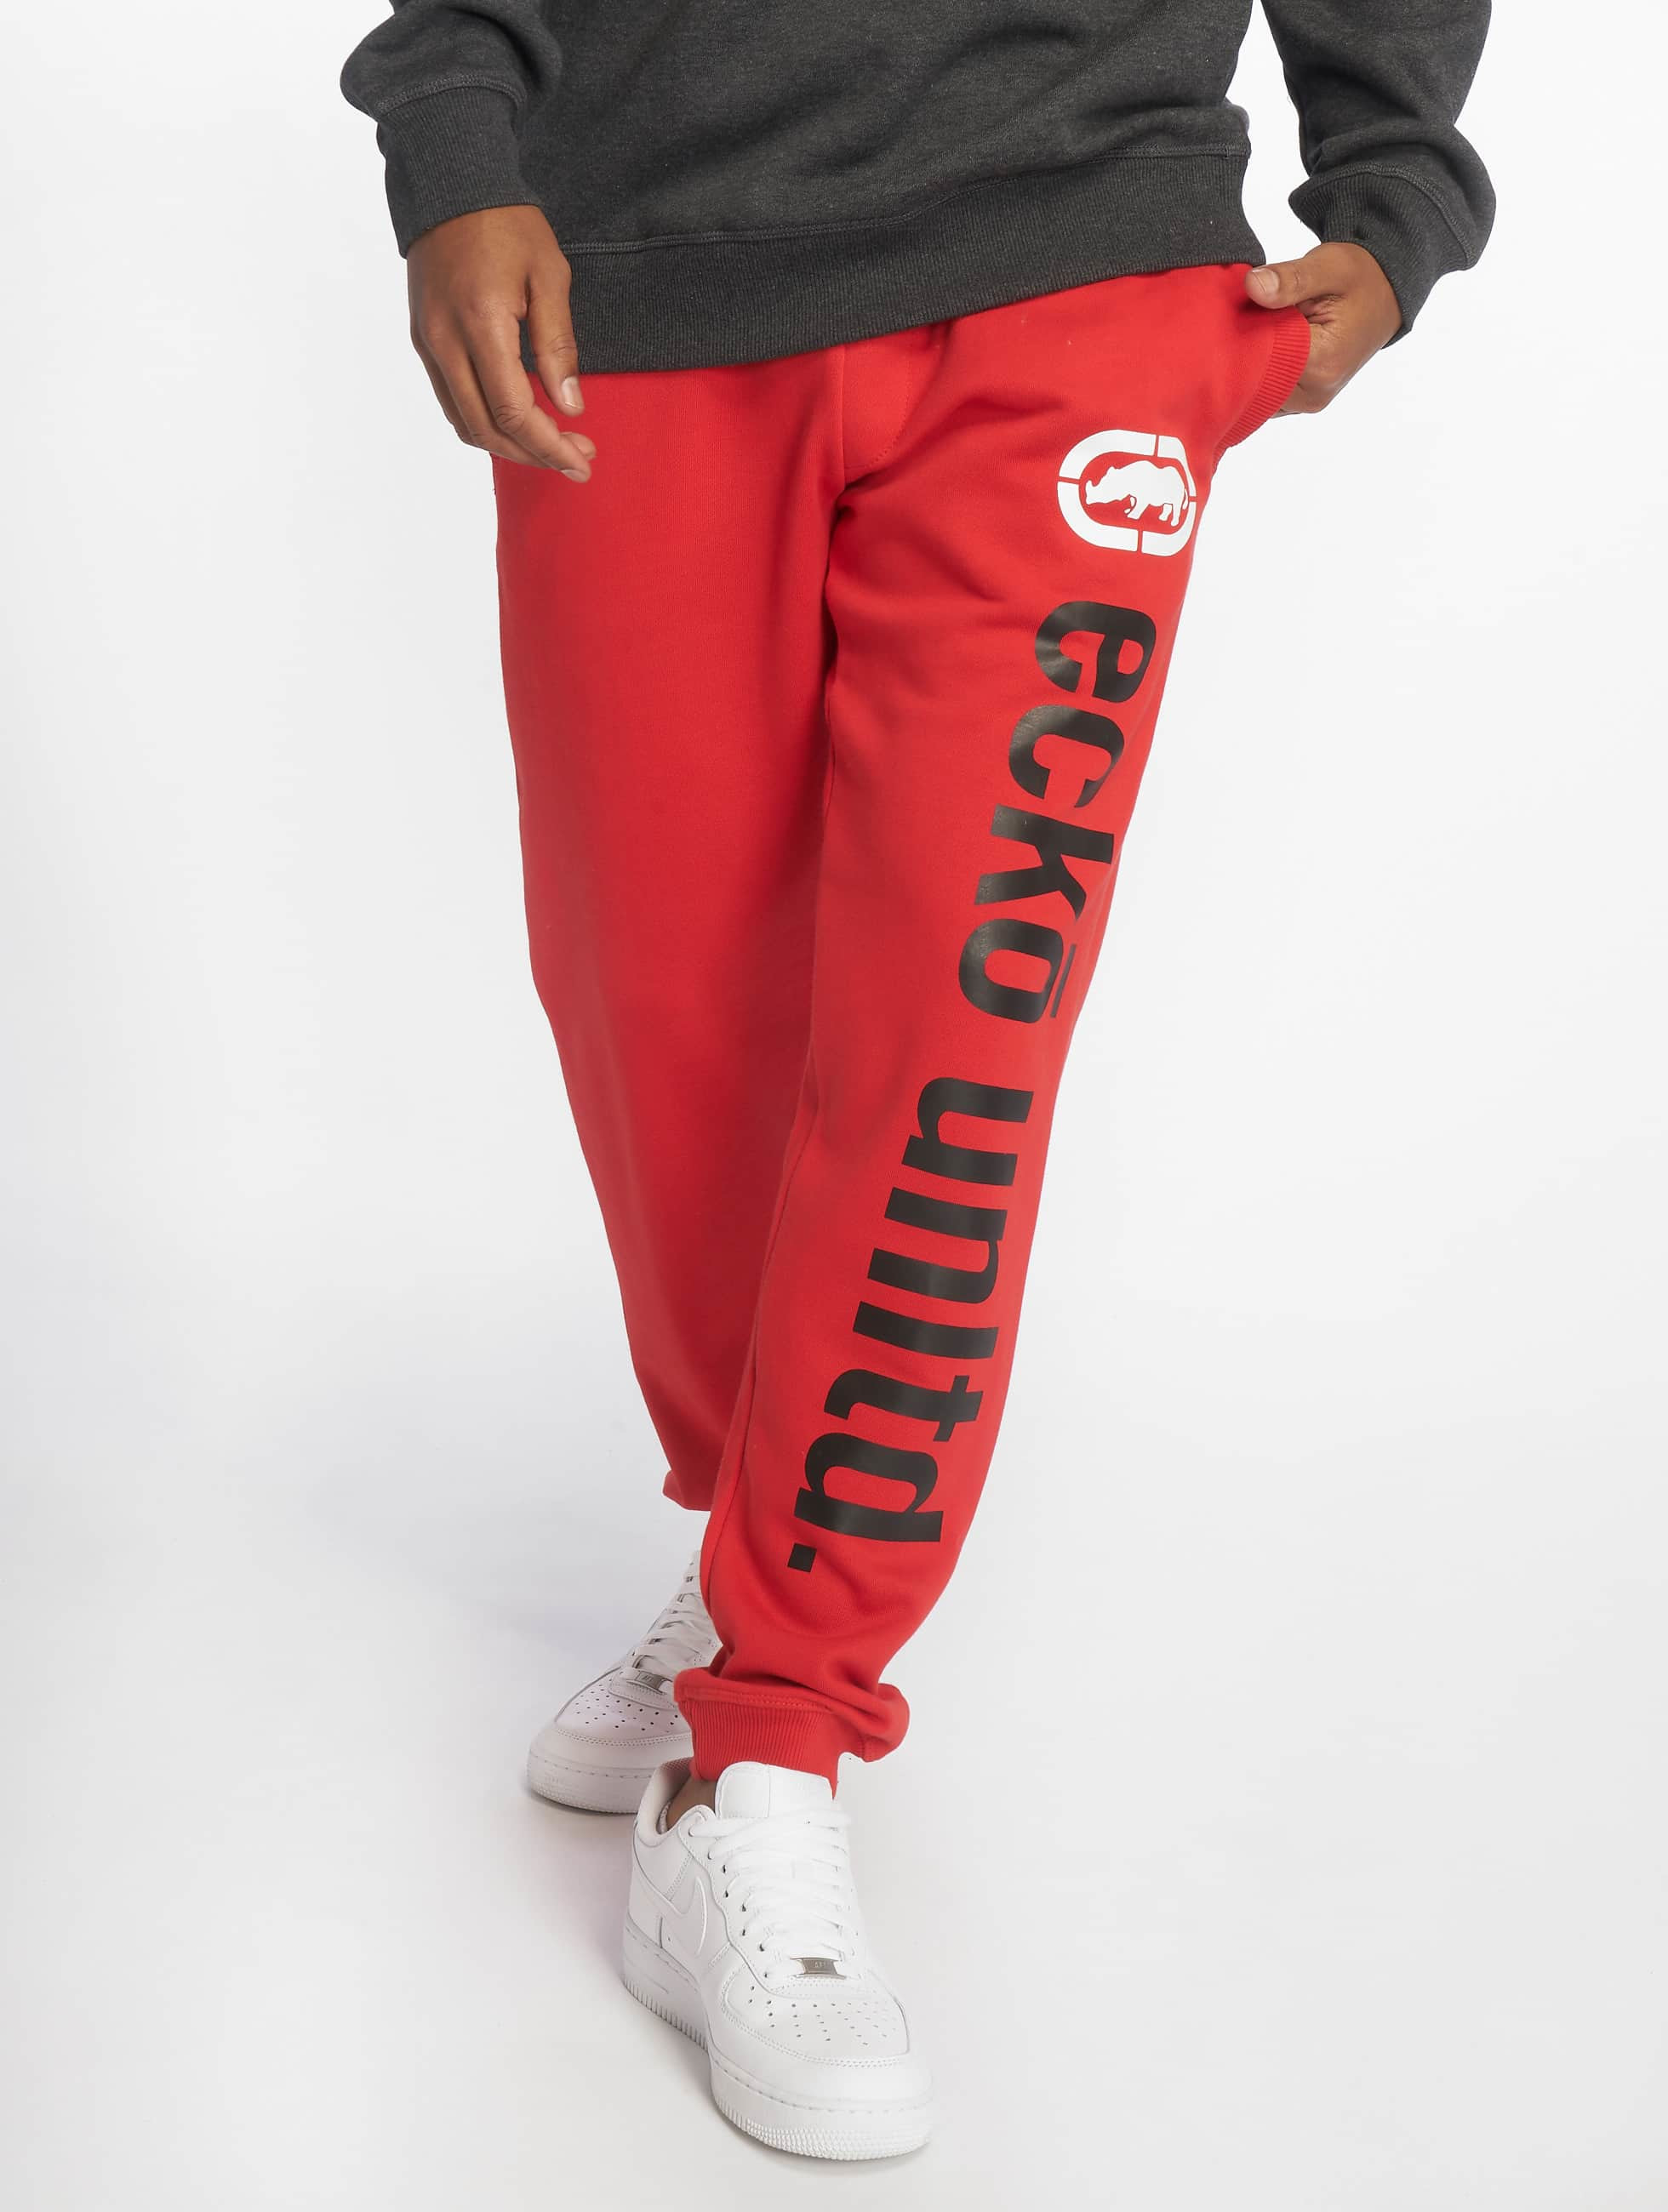 Ecko Unltd. / Sweat Pant 2Face in red 2XL